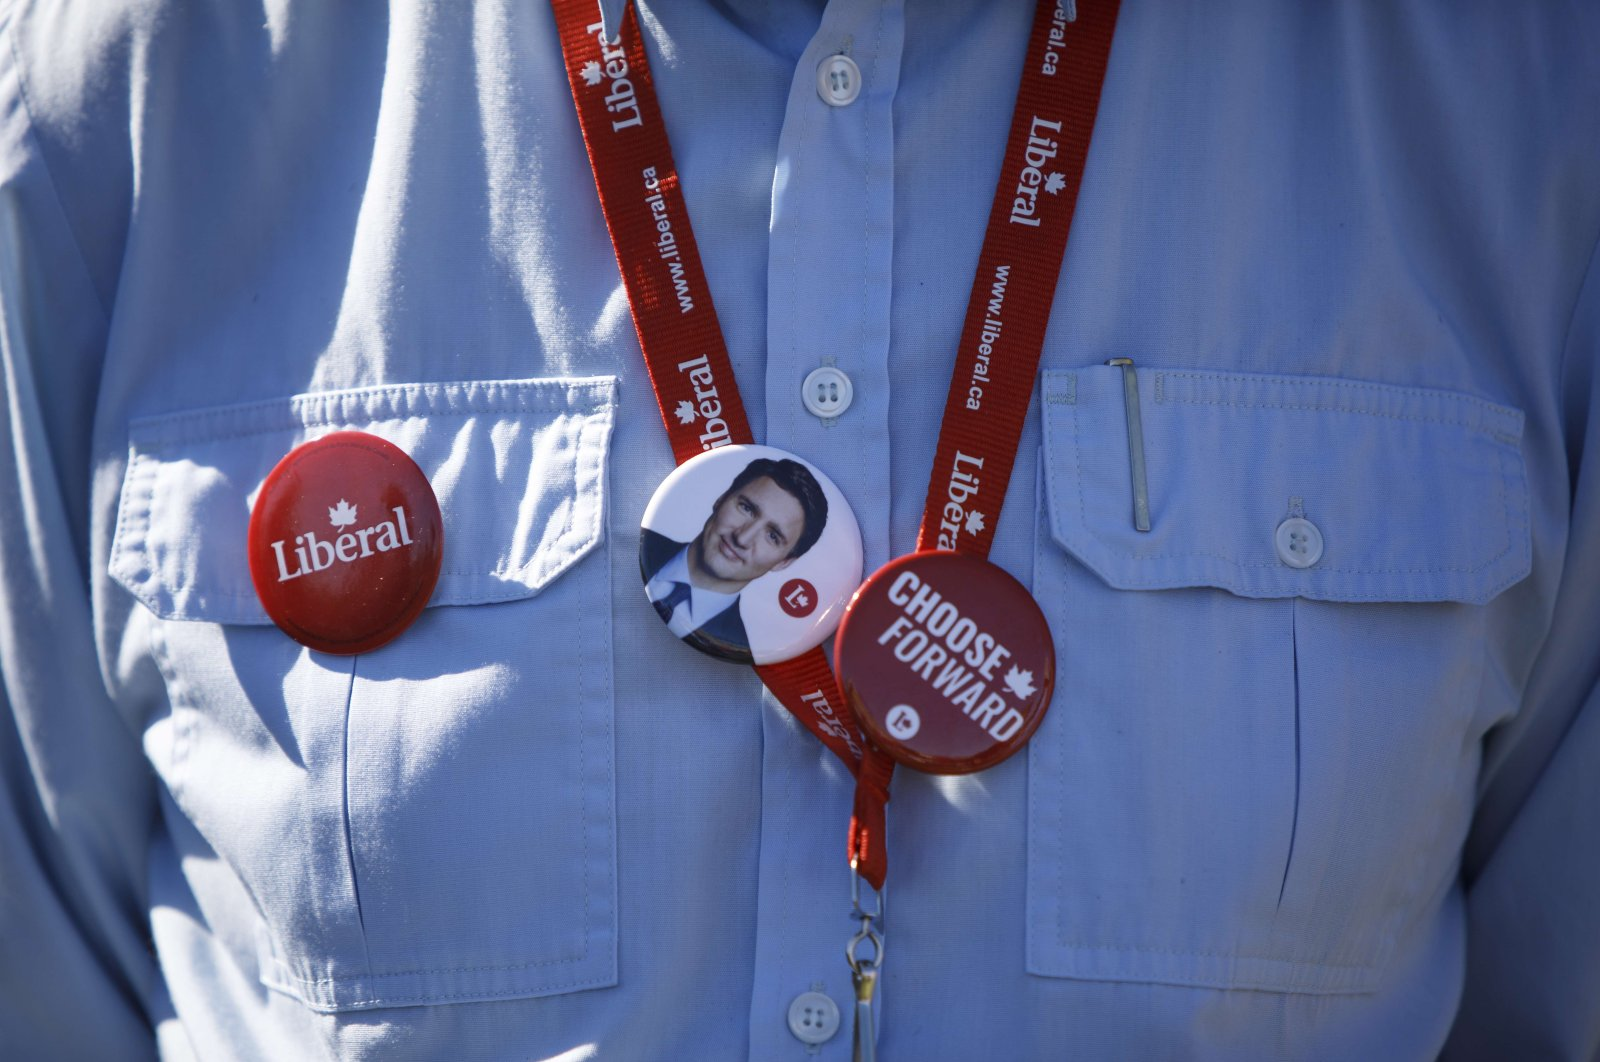 A supporter wears a pin depicting Liberal Party Leader Justin Trudeau during a campaign stop in Niagara Falls, Canada, Sept. 19, 2021 (AFP Photo)